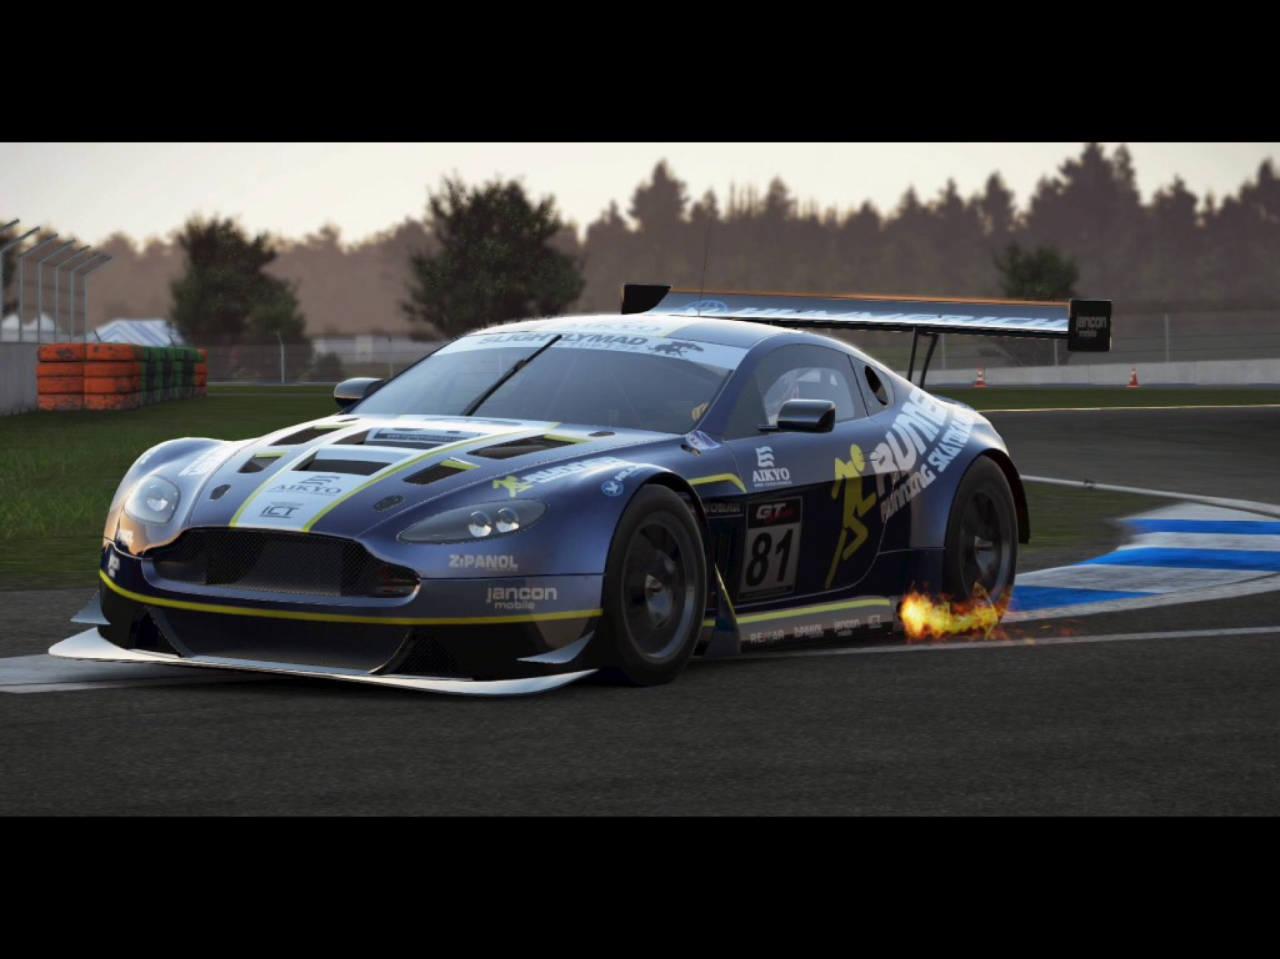 Aston Martin V12 Vantage GT3 at Hockenheim